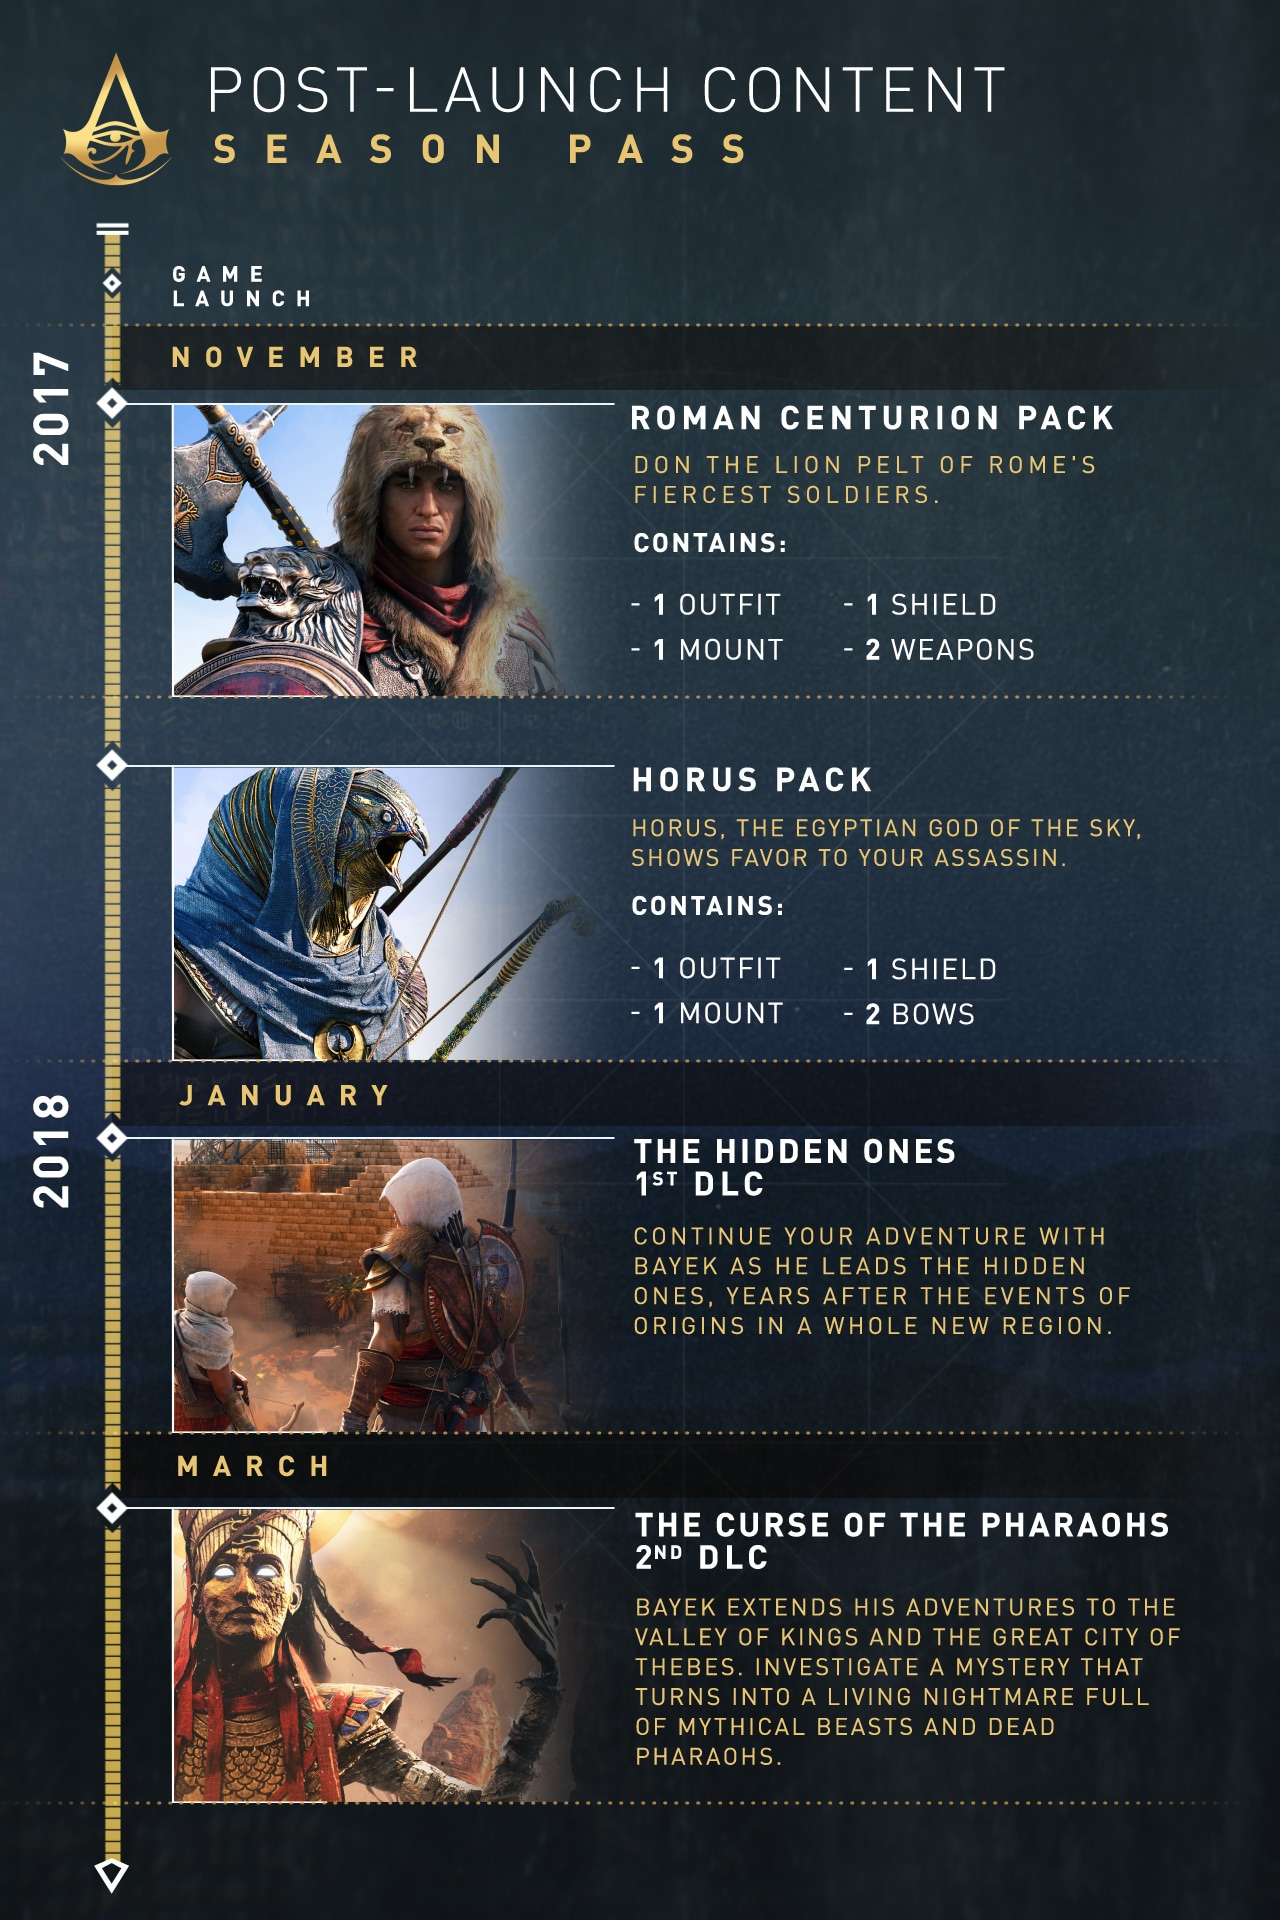 ac_seaons_pass_timeline_thumb